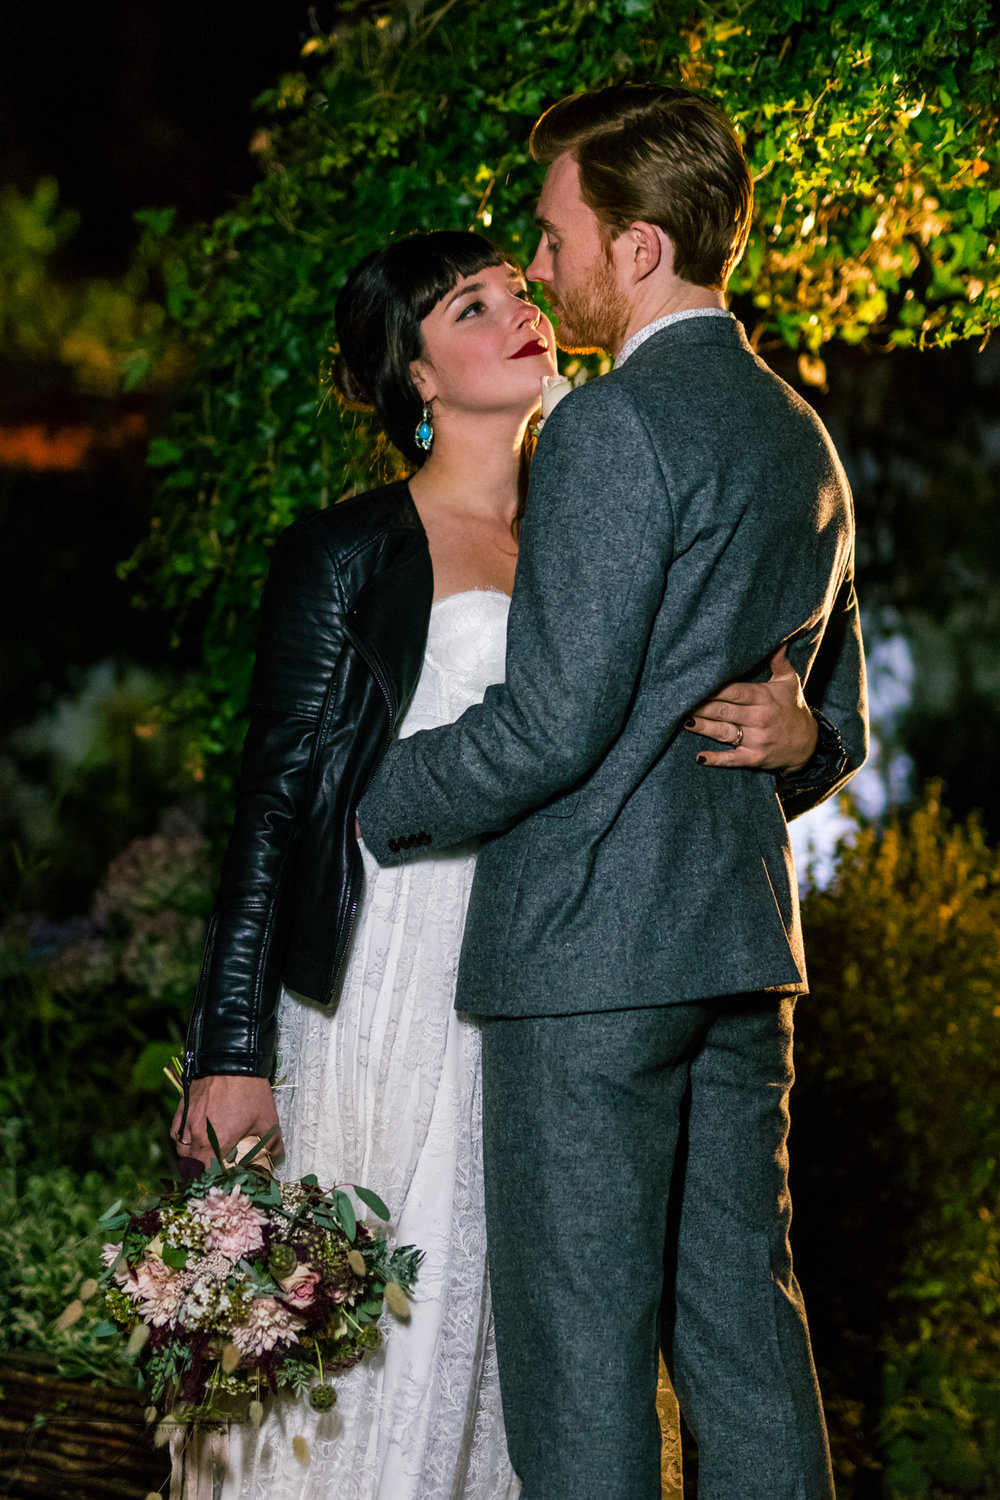 the bride and groom are lit with a single flash outside their wedding venue for their photography shoot